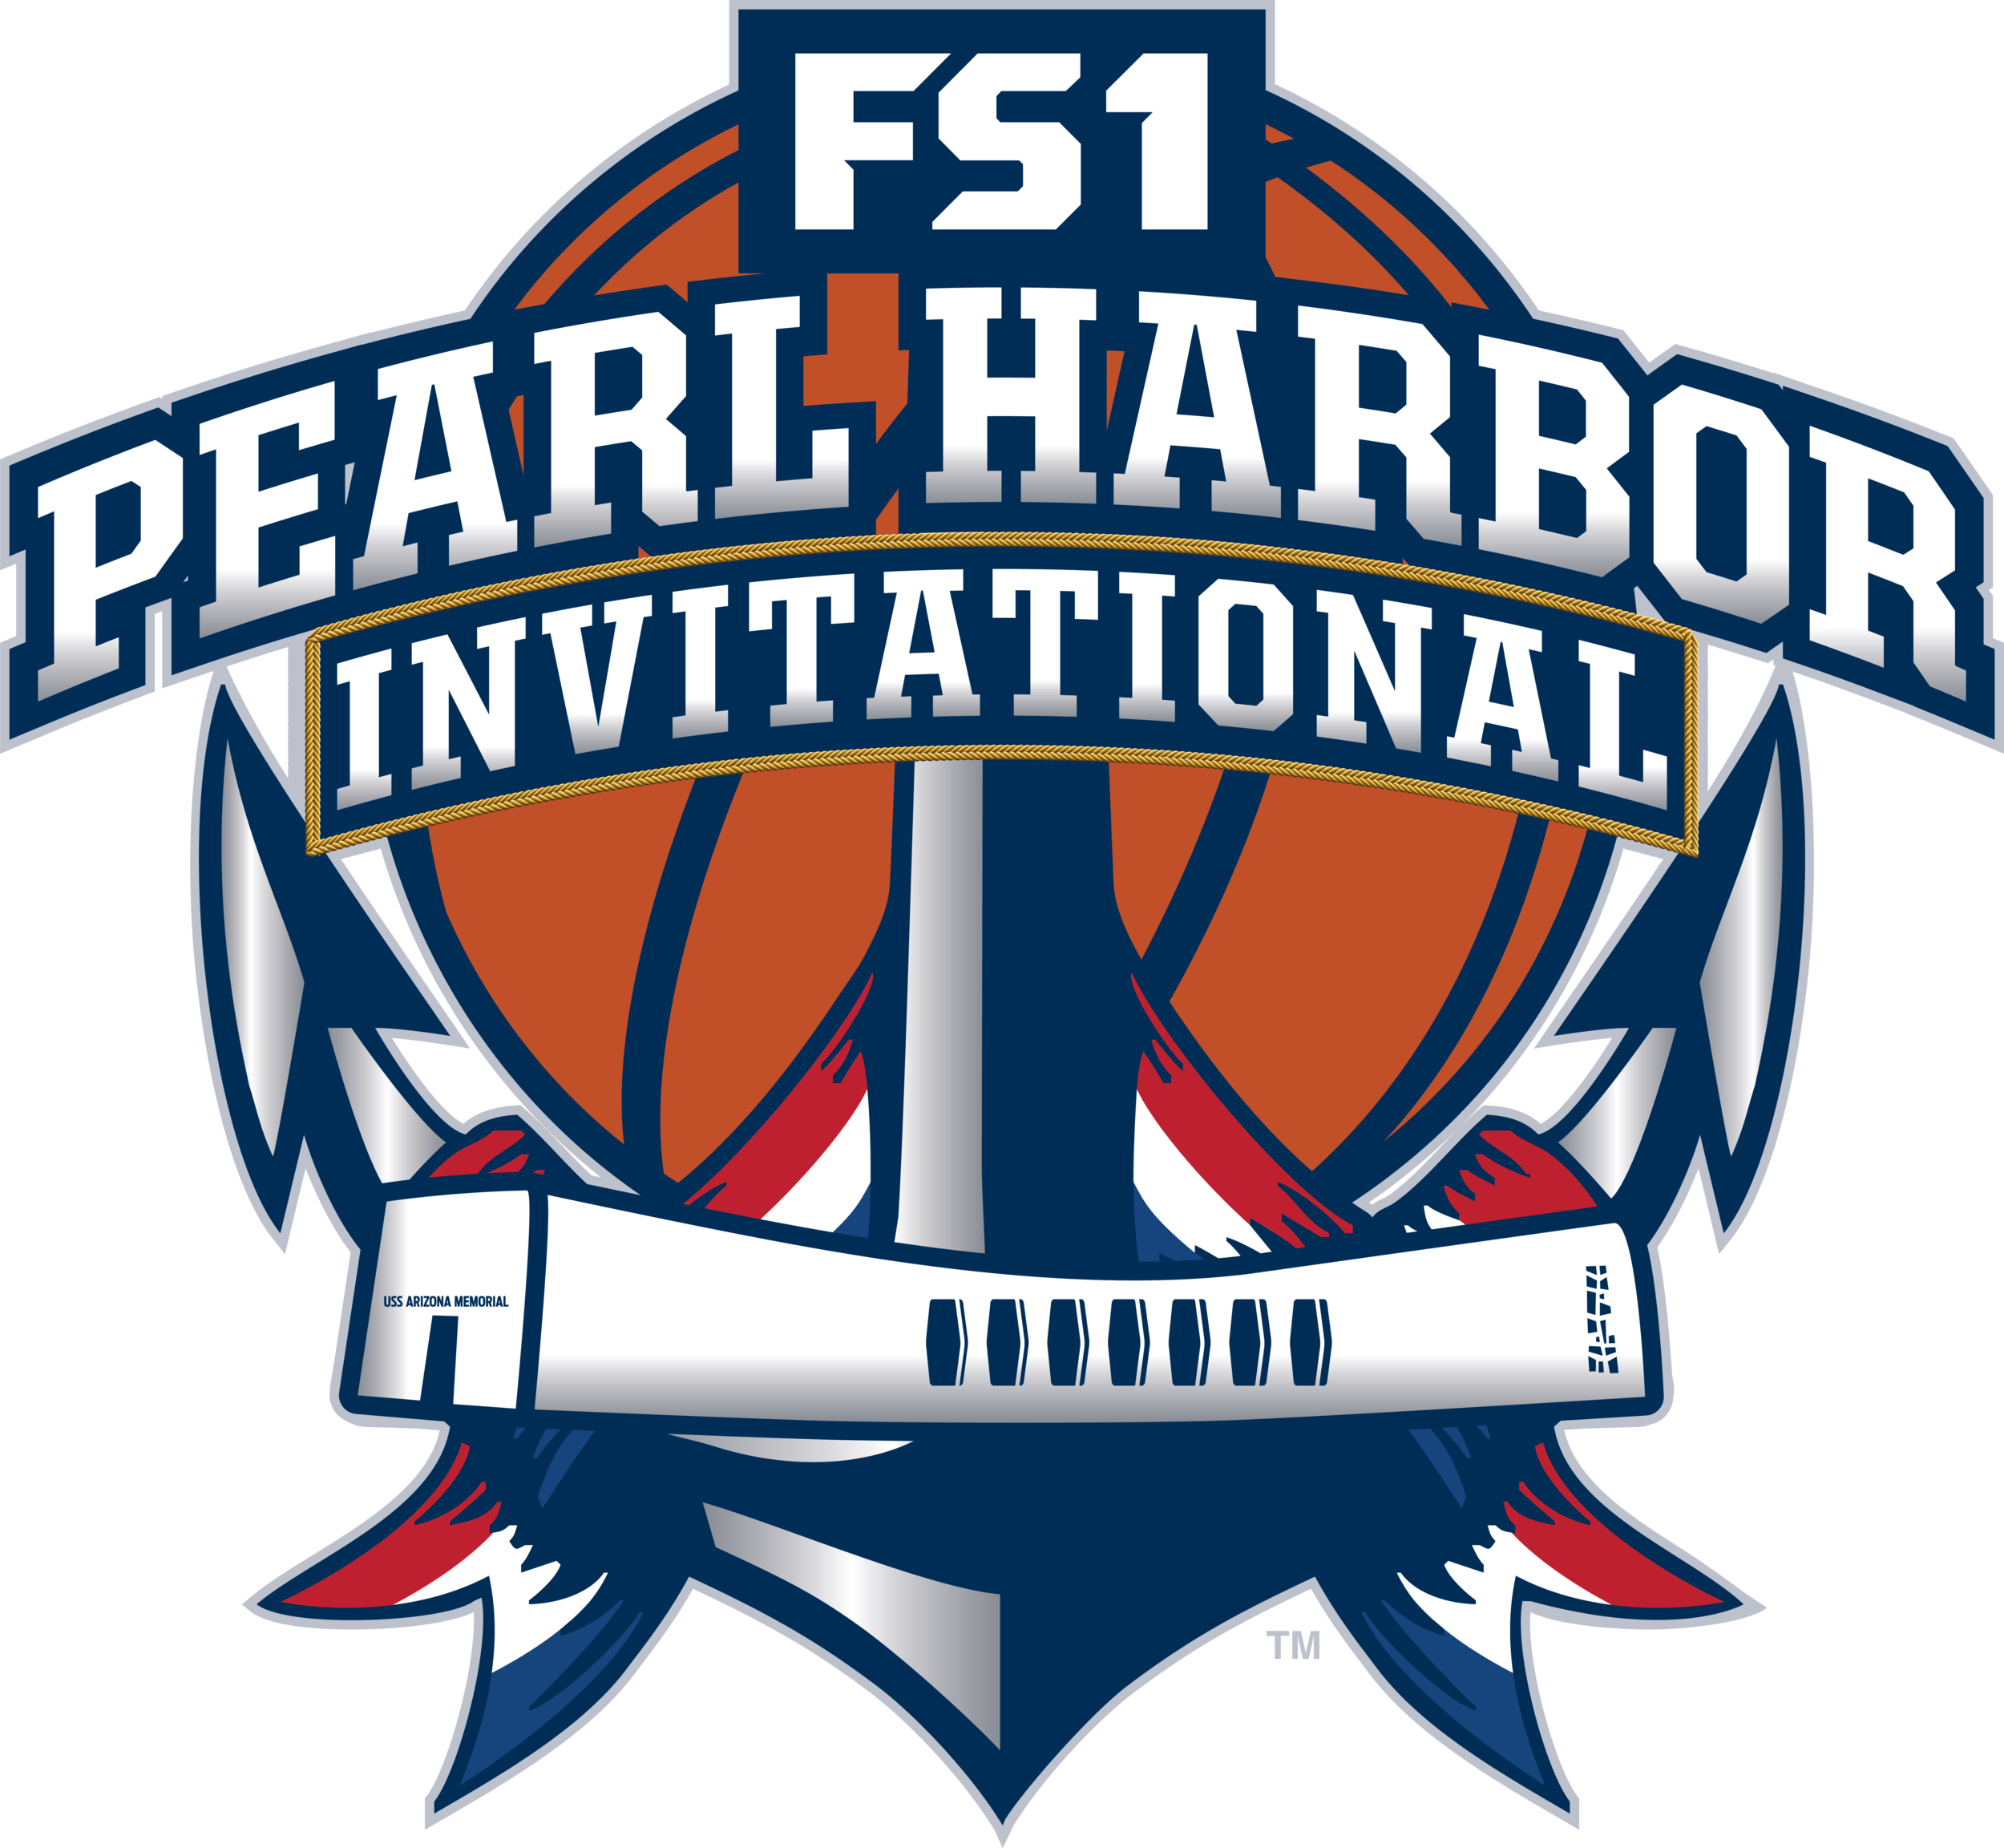 Positive Impact was retained by Fox Sports to produce and organize both the 2015 and 2016 FS1 Pearl Harbor Invitational. These Division 1 college basketball games were played to pay tribute to the Nation's military while reminding Americans about the world-altering attack that occurred at Pearl Harbor. Positive Impact managed all non-broadcast operations for the December 7th NCAA double headers, held at historic Bloch Arena on Joint Base Pearl Harbor-Hickam. The Team successfully handled building operations, staffing, team management, game operations, ticketing, liaising with the Navy on security/base clearance, support structures for broadcast, lighting, sound, marketing support, facility upgrades and press and media operations.